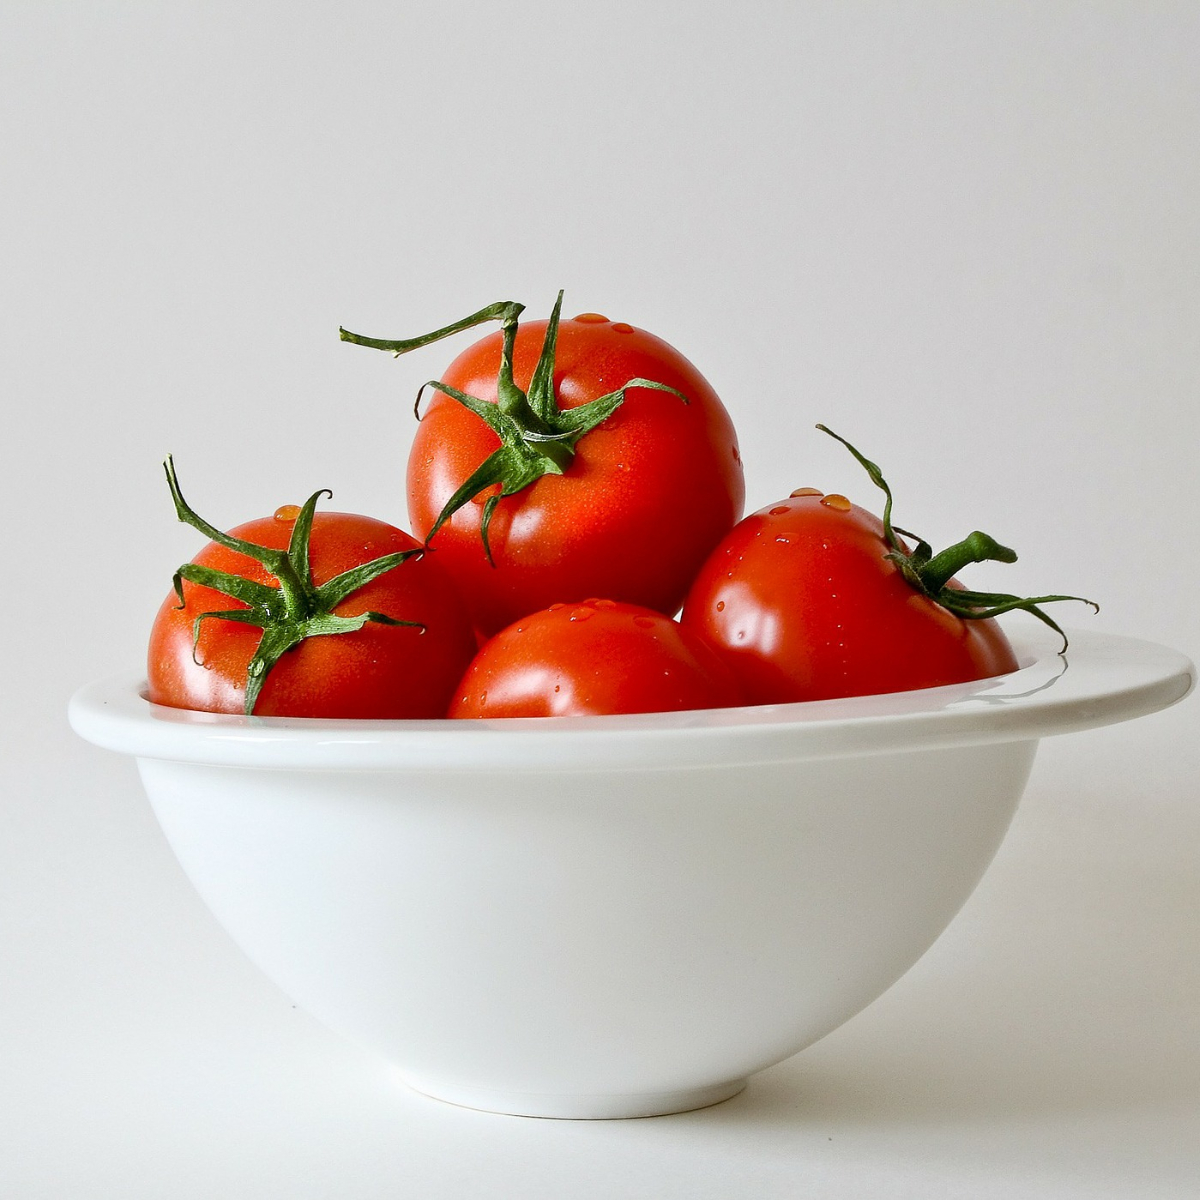 High Blood Pressure: Here's how the humble tomato can have a positive impact on BP